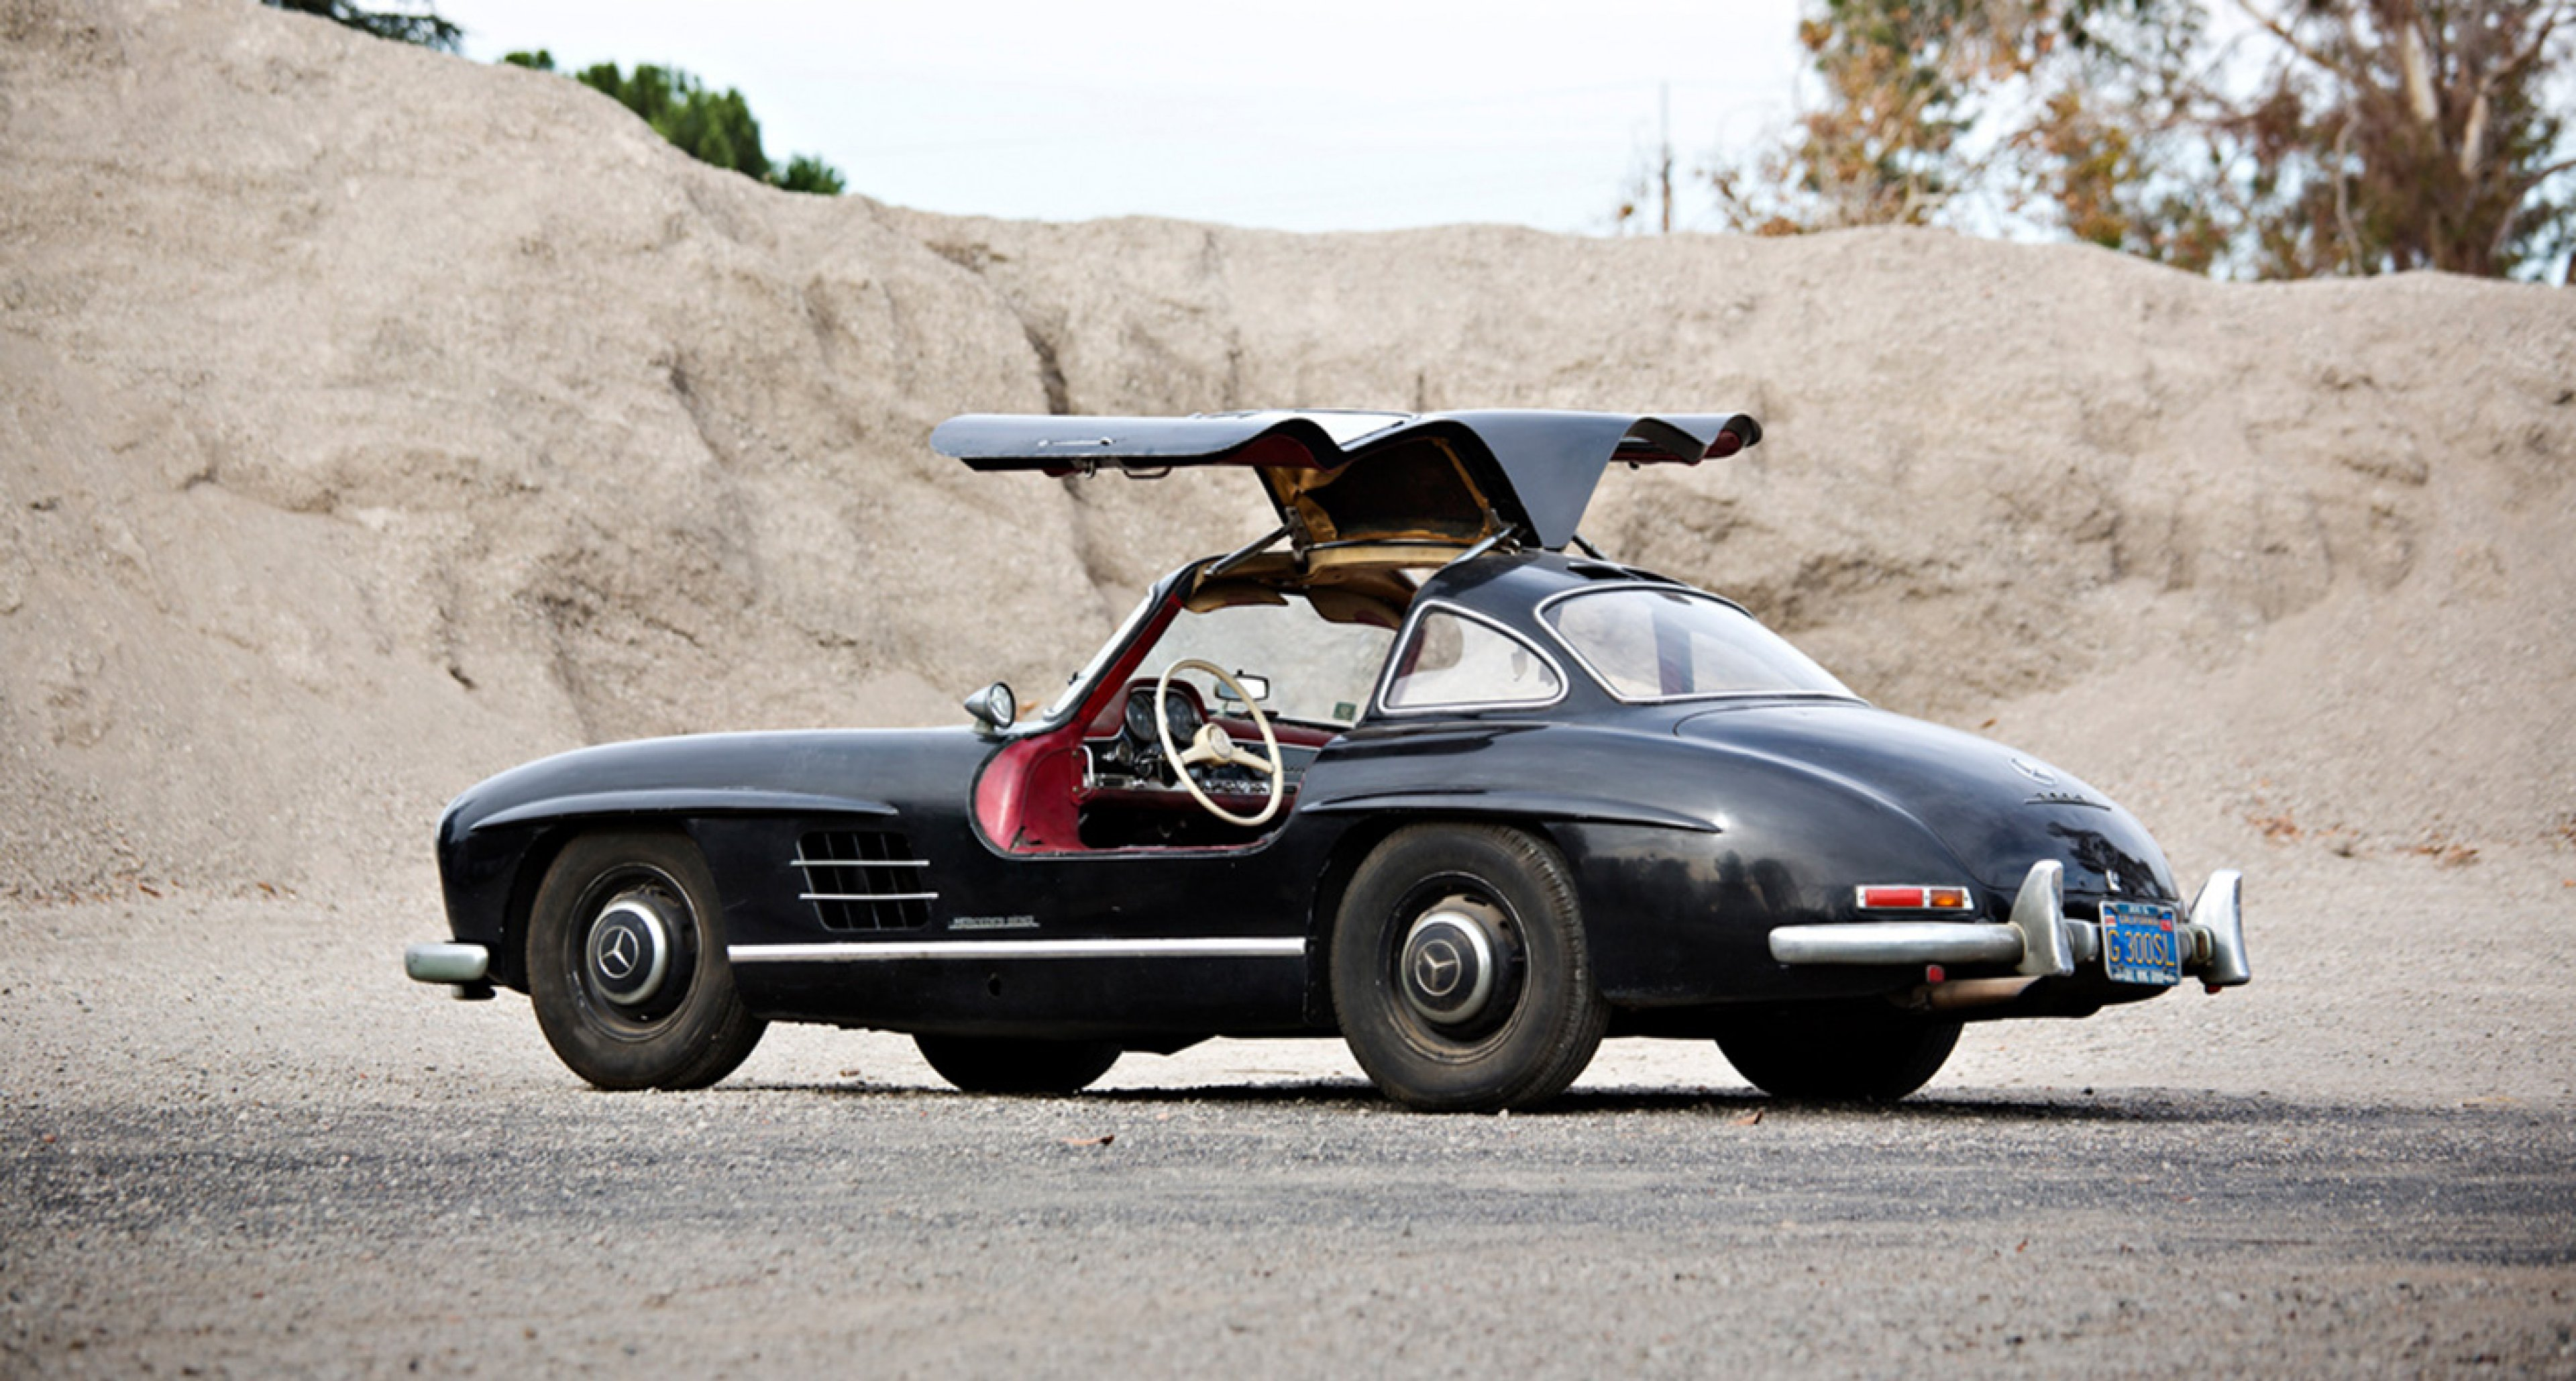 1956 Mercedes-Benz 300 SL Gullwing sold by Gooding in January 2014 for $1,897,500